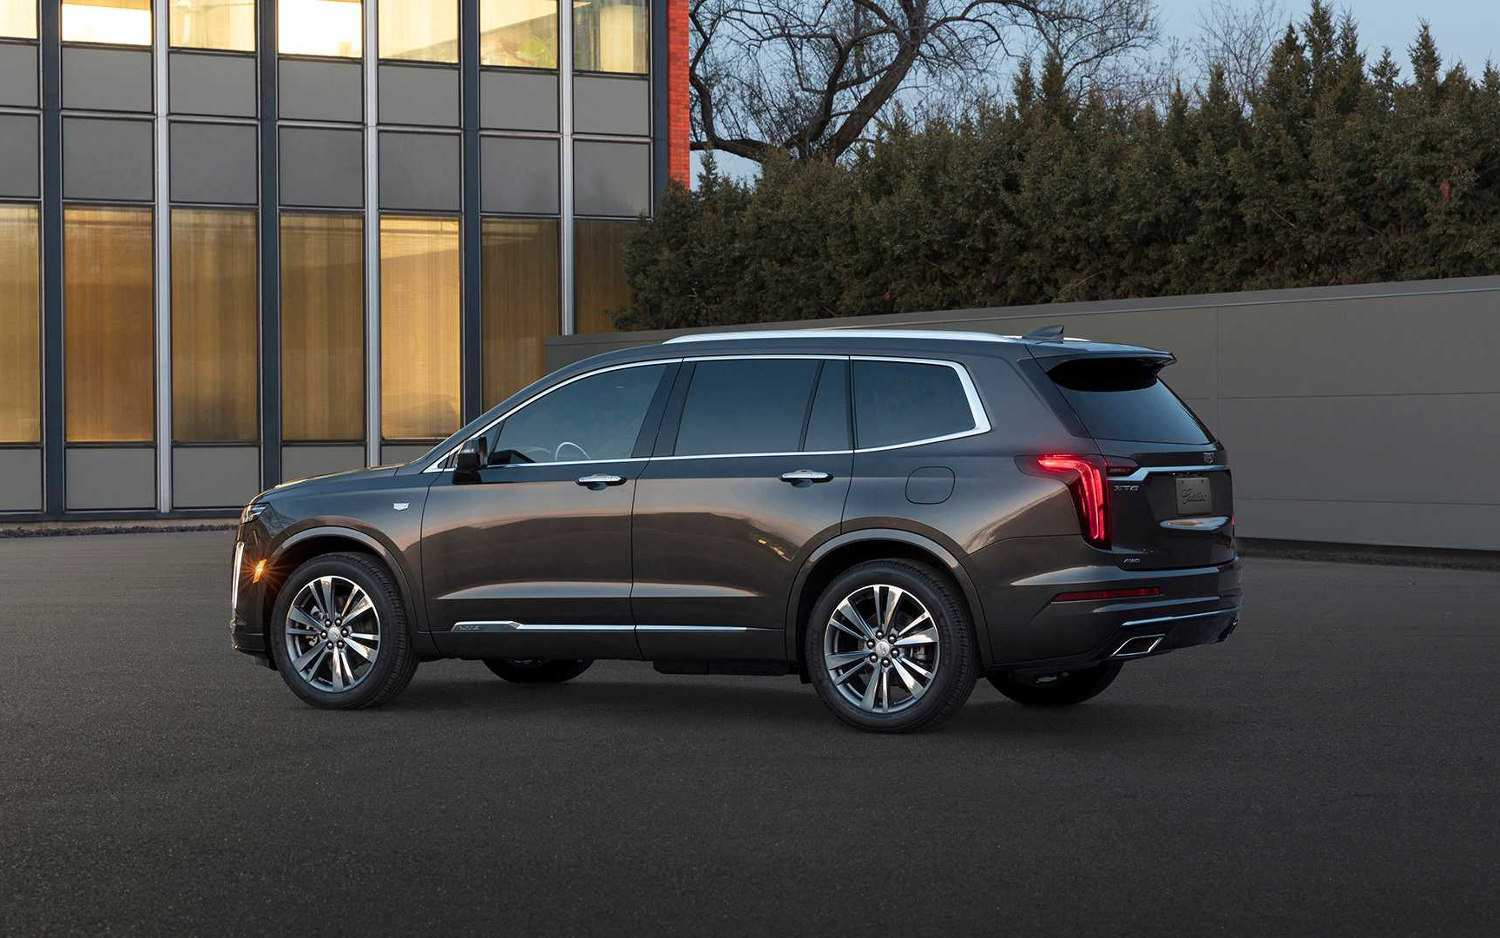 54 The Best Cadillac X6 2020 Price